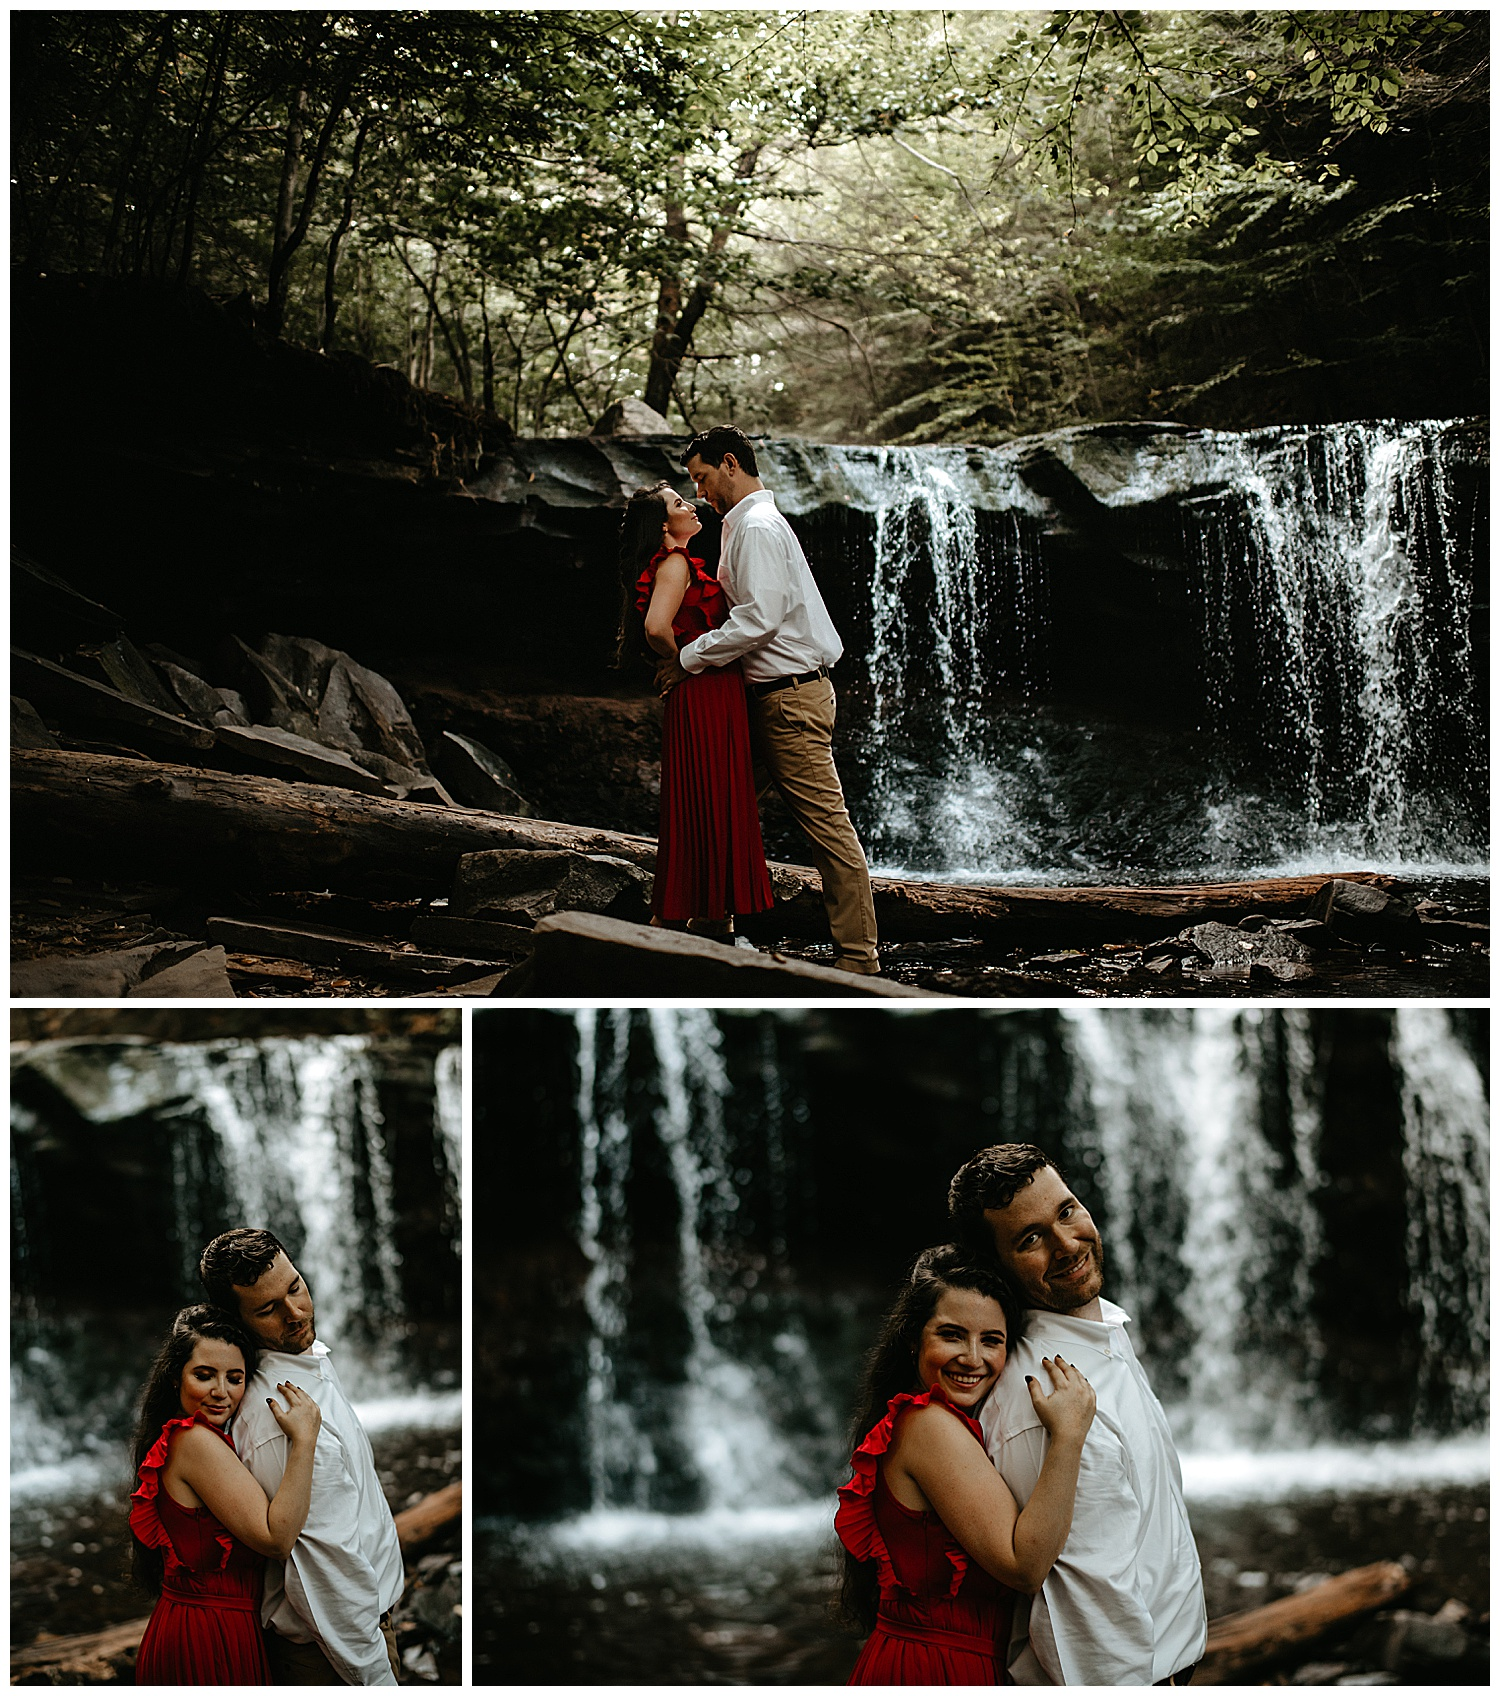 NEPA-Wedding-Engagement-Photographer-at-Ricketts-Glen-State-Park-Benton-PA_0011.jpg